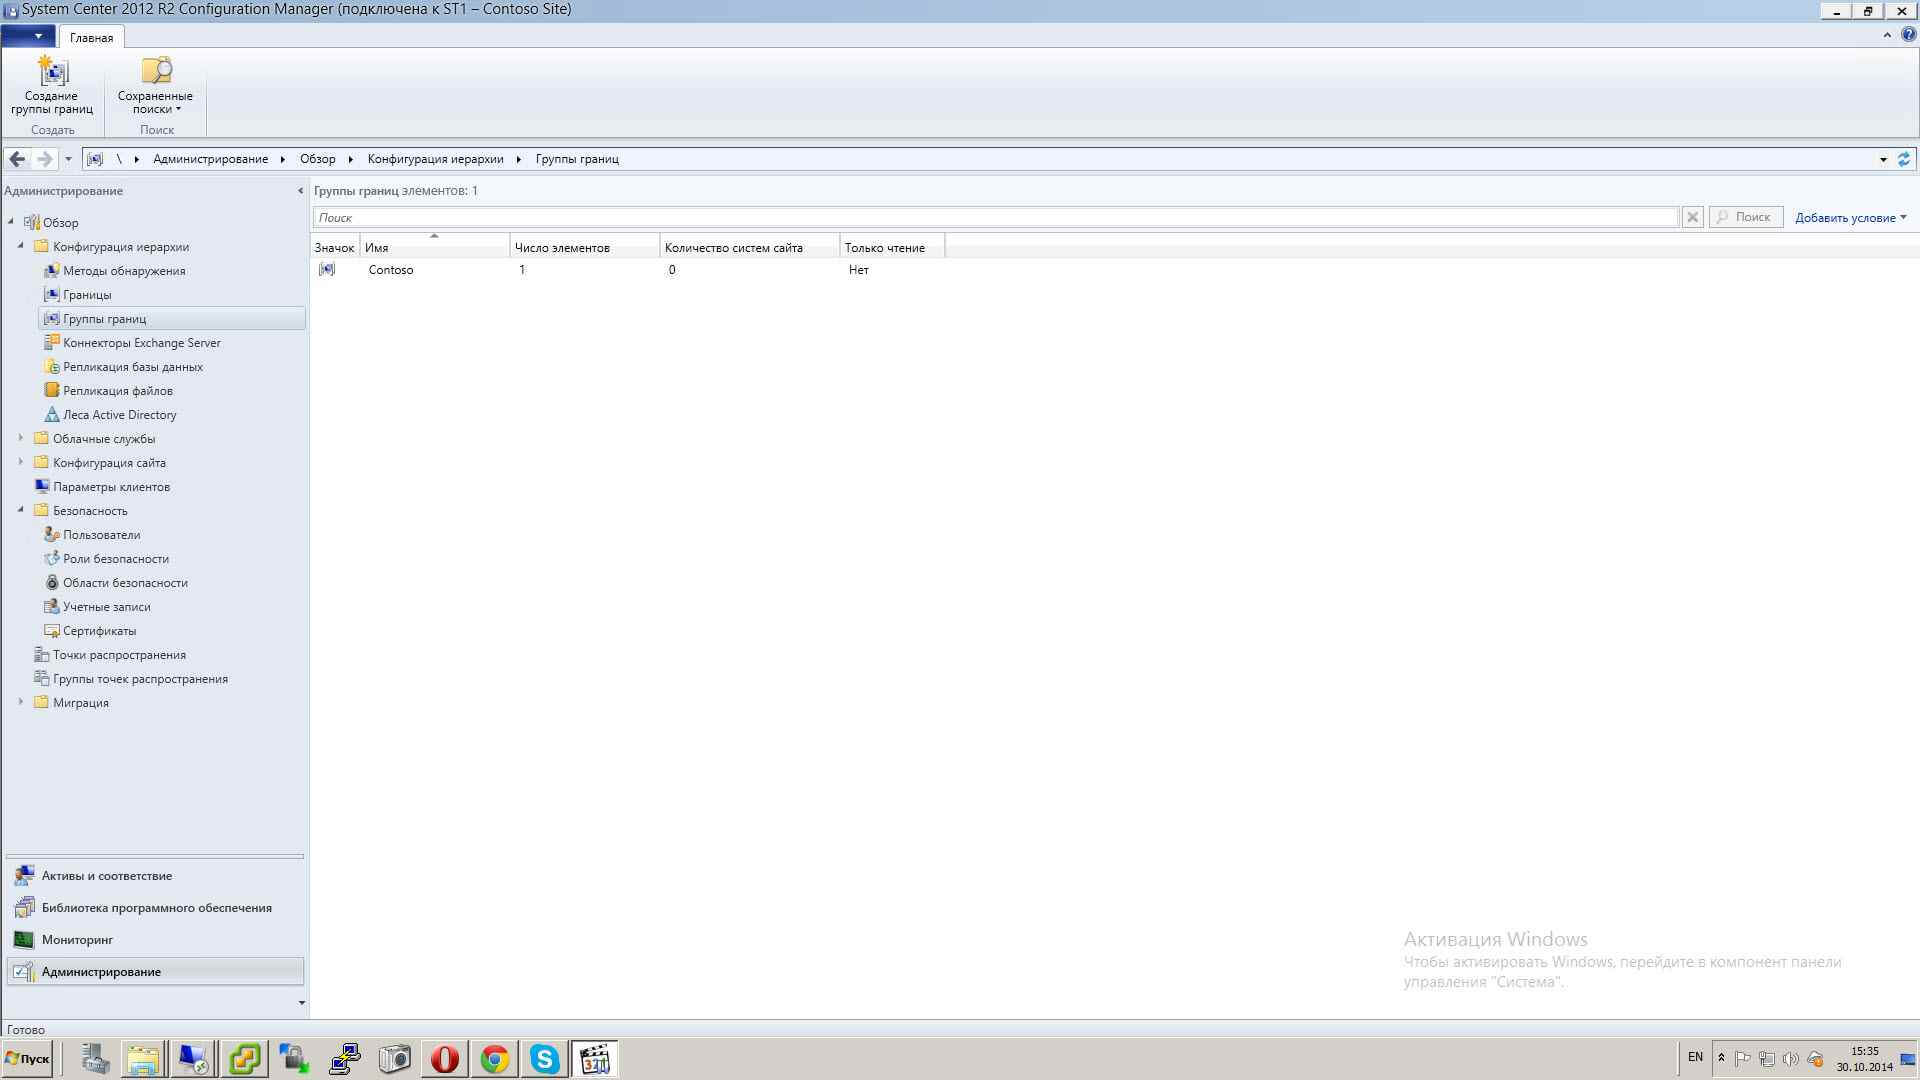 Как установить SCCM (System Center Configuration Manager) 2012R2 в windows server 2012R2 -3 часть. Базовая настройка site server-42